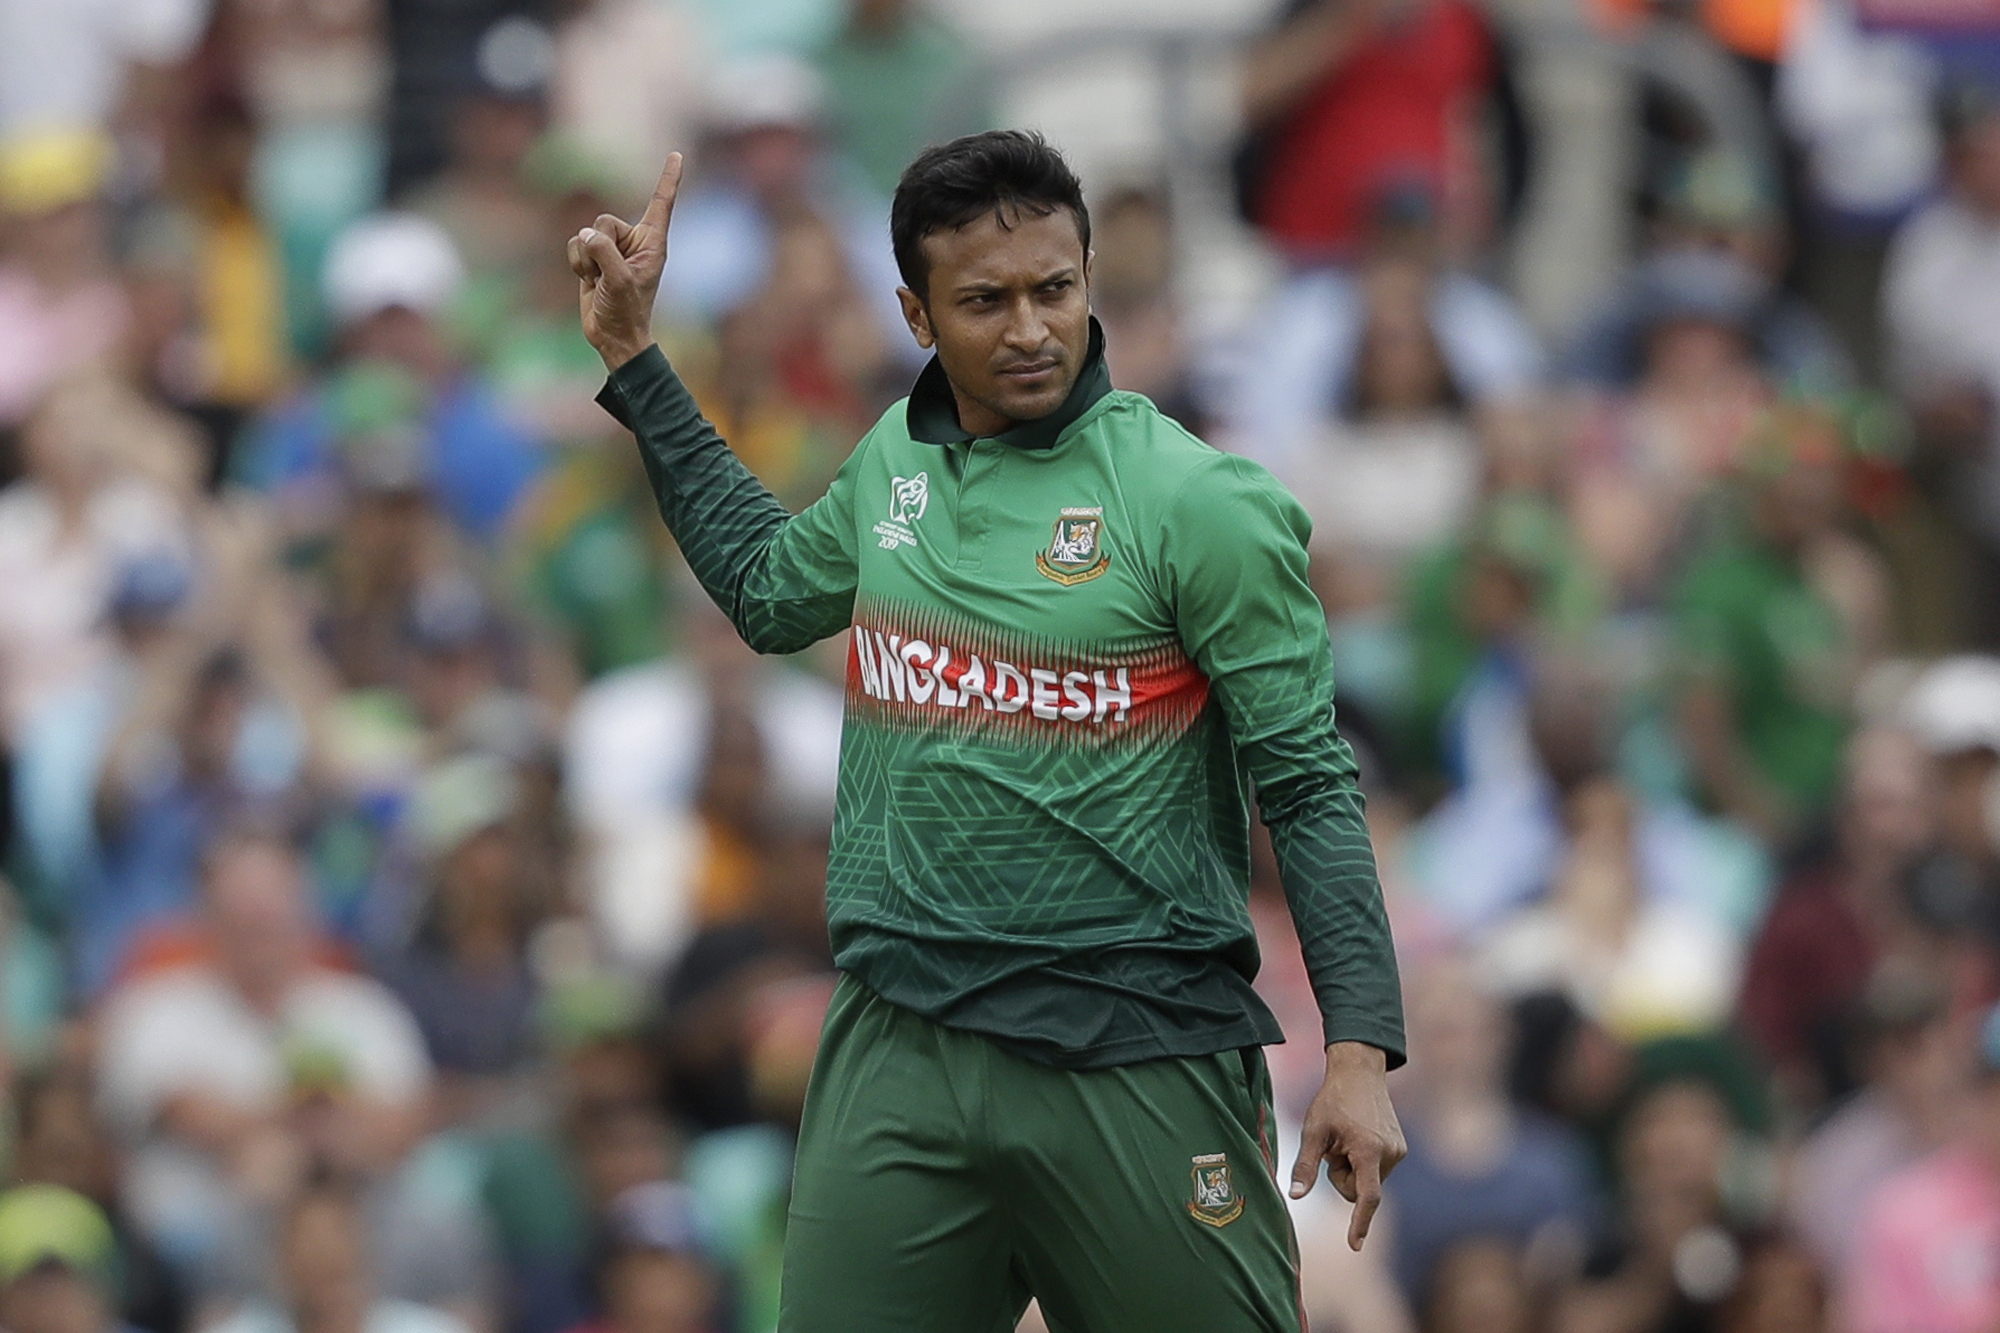 Bangladesh's Shakib Al Hasan celebrates taking the wicket of South Africa's Aiden Markram at the Oval in London on June 2.